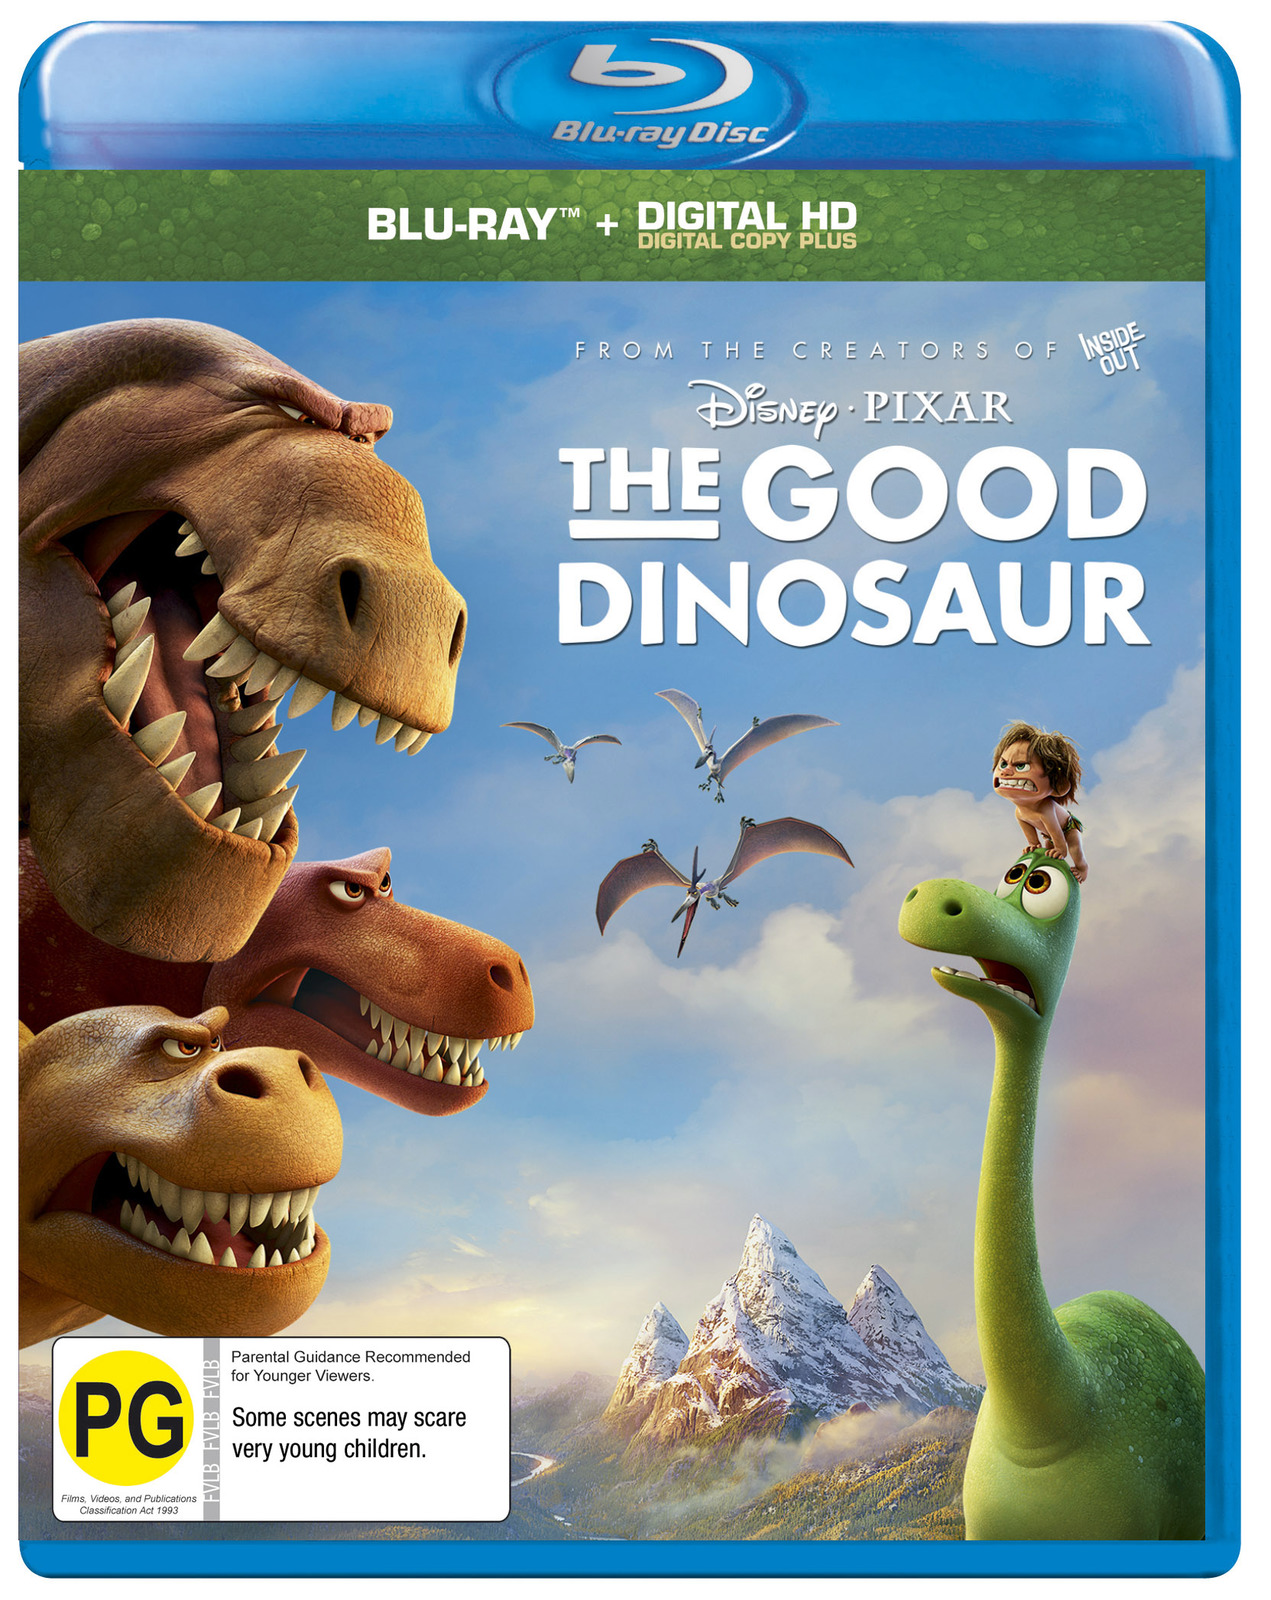 The Good Dinosaur on Blu-ray image